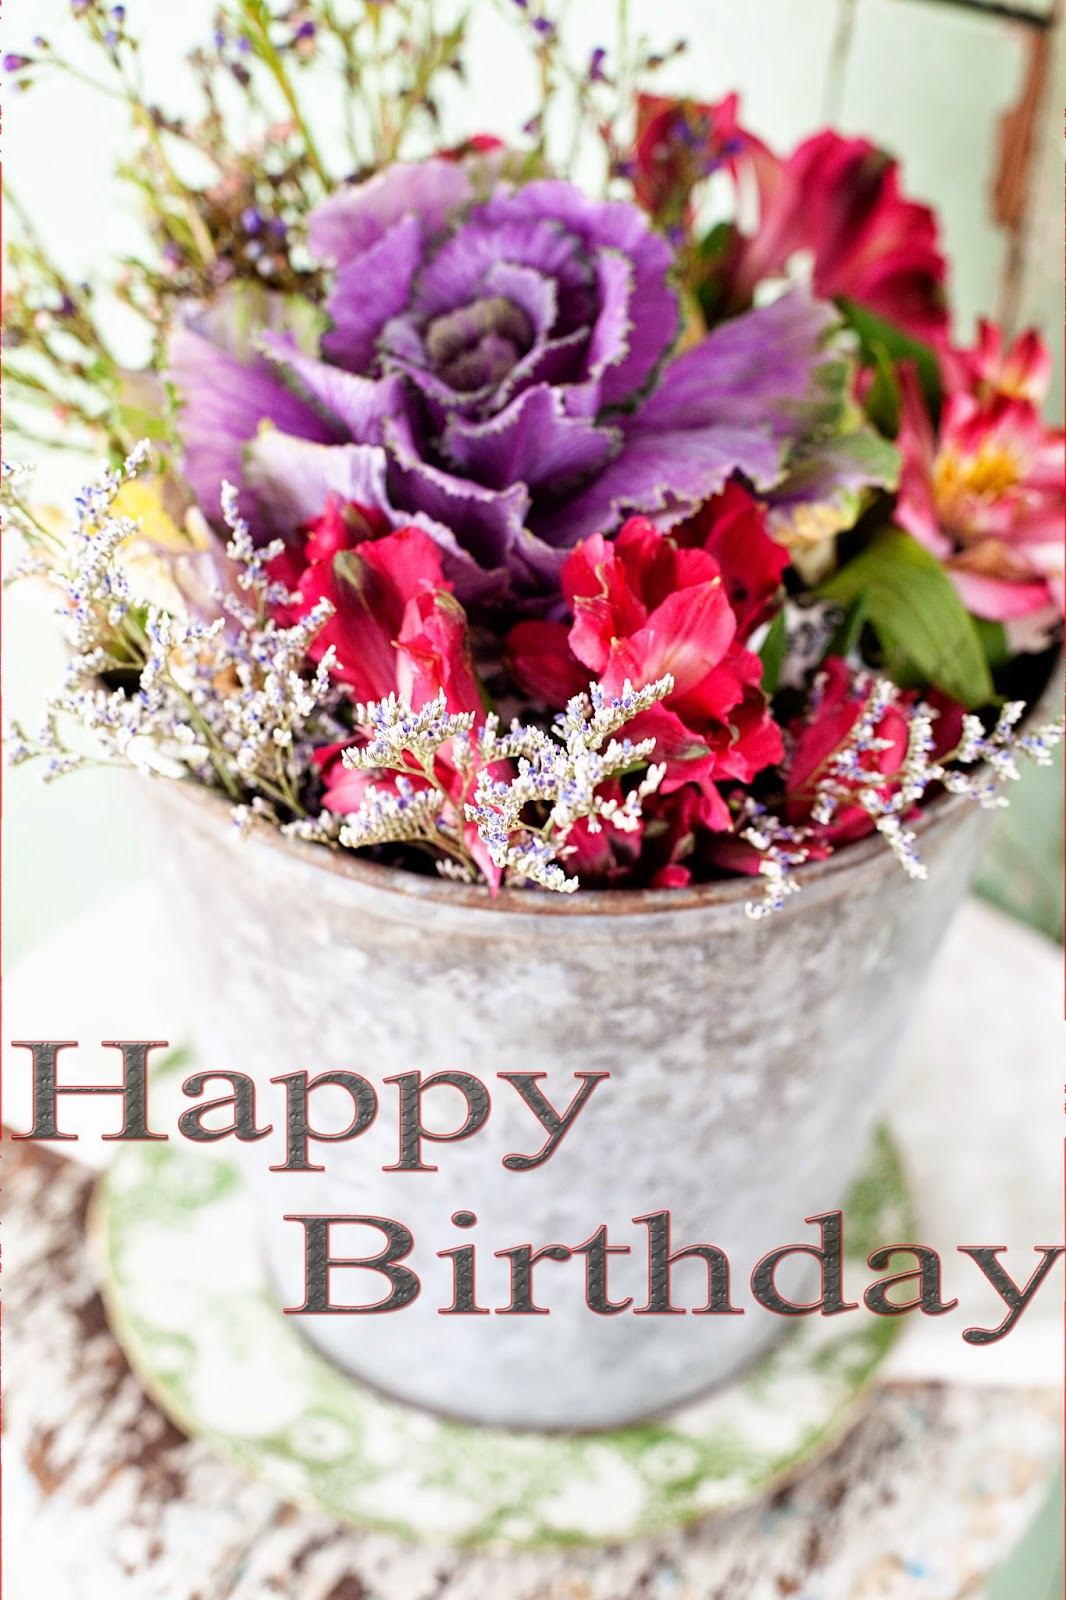 Happy Birthday Cake And Flowers Images Greetings Wishes Images